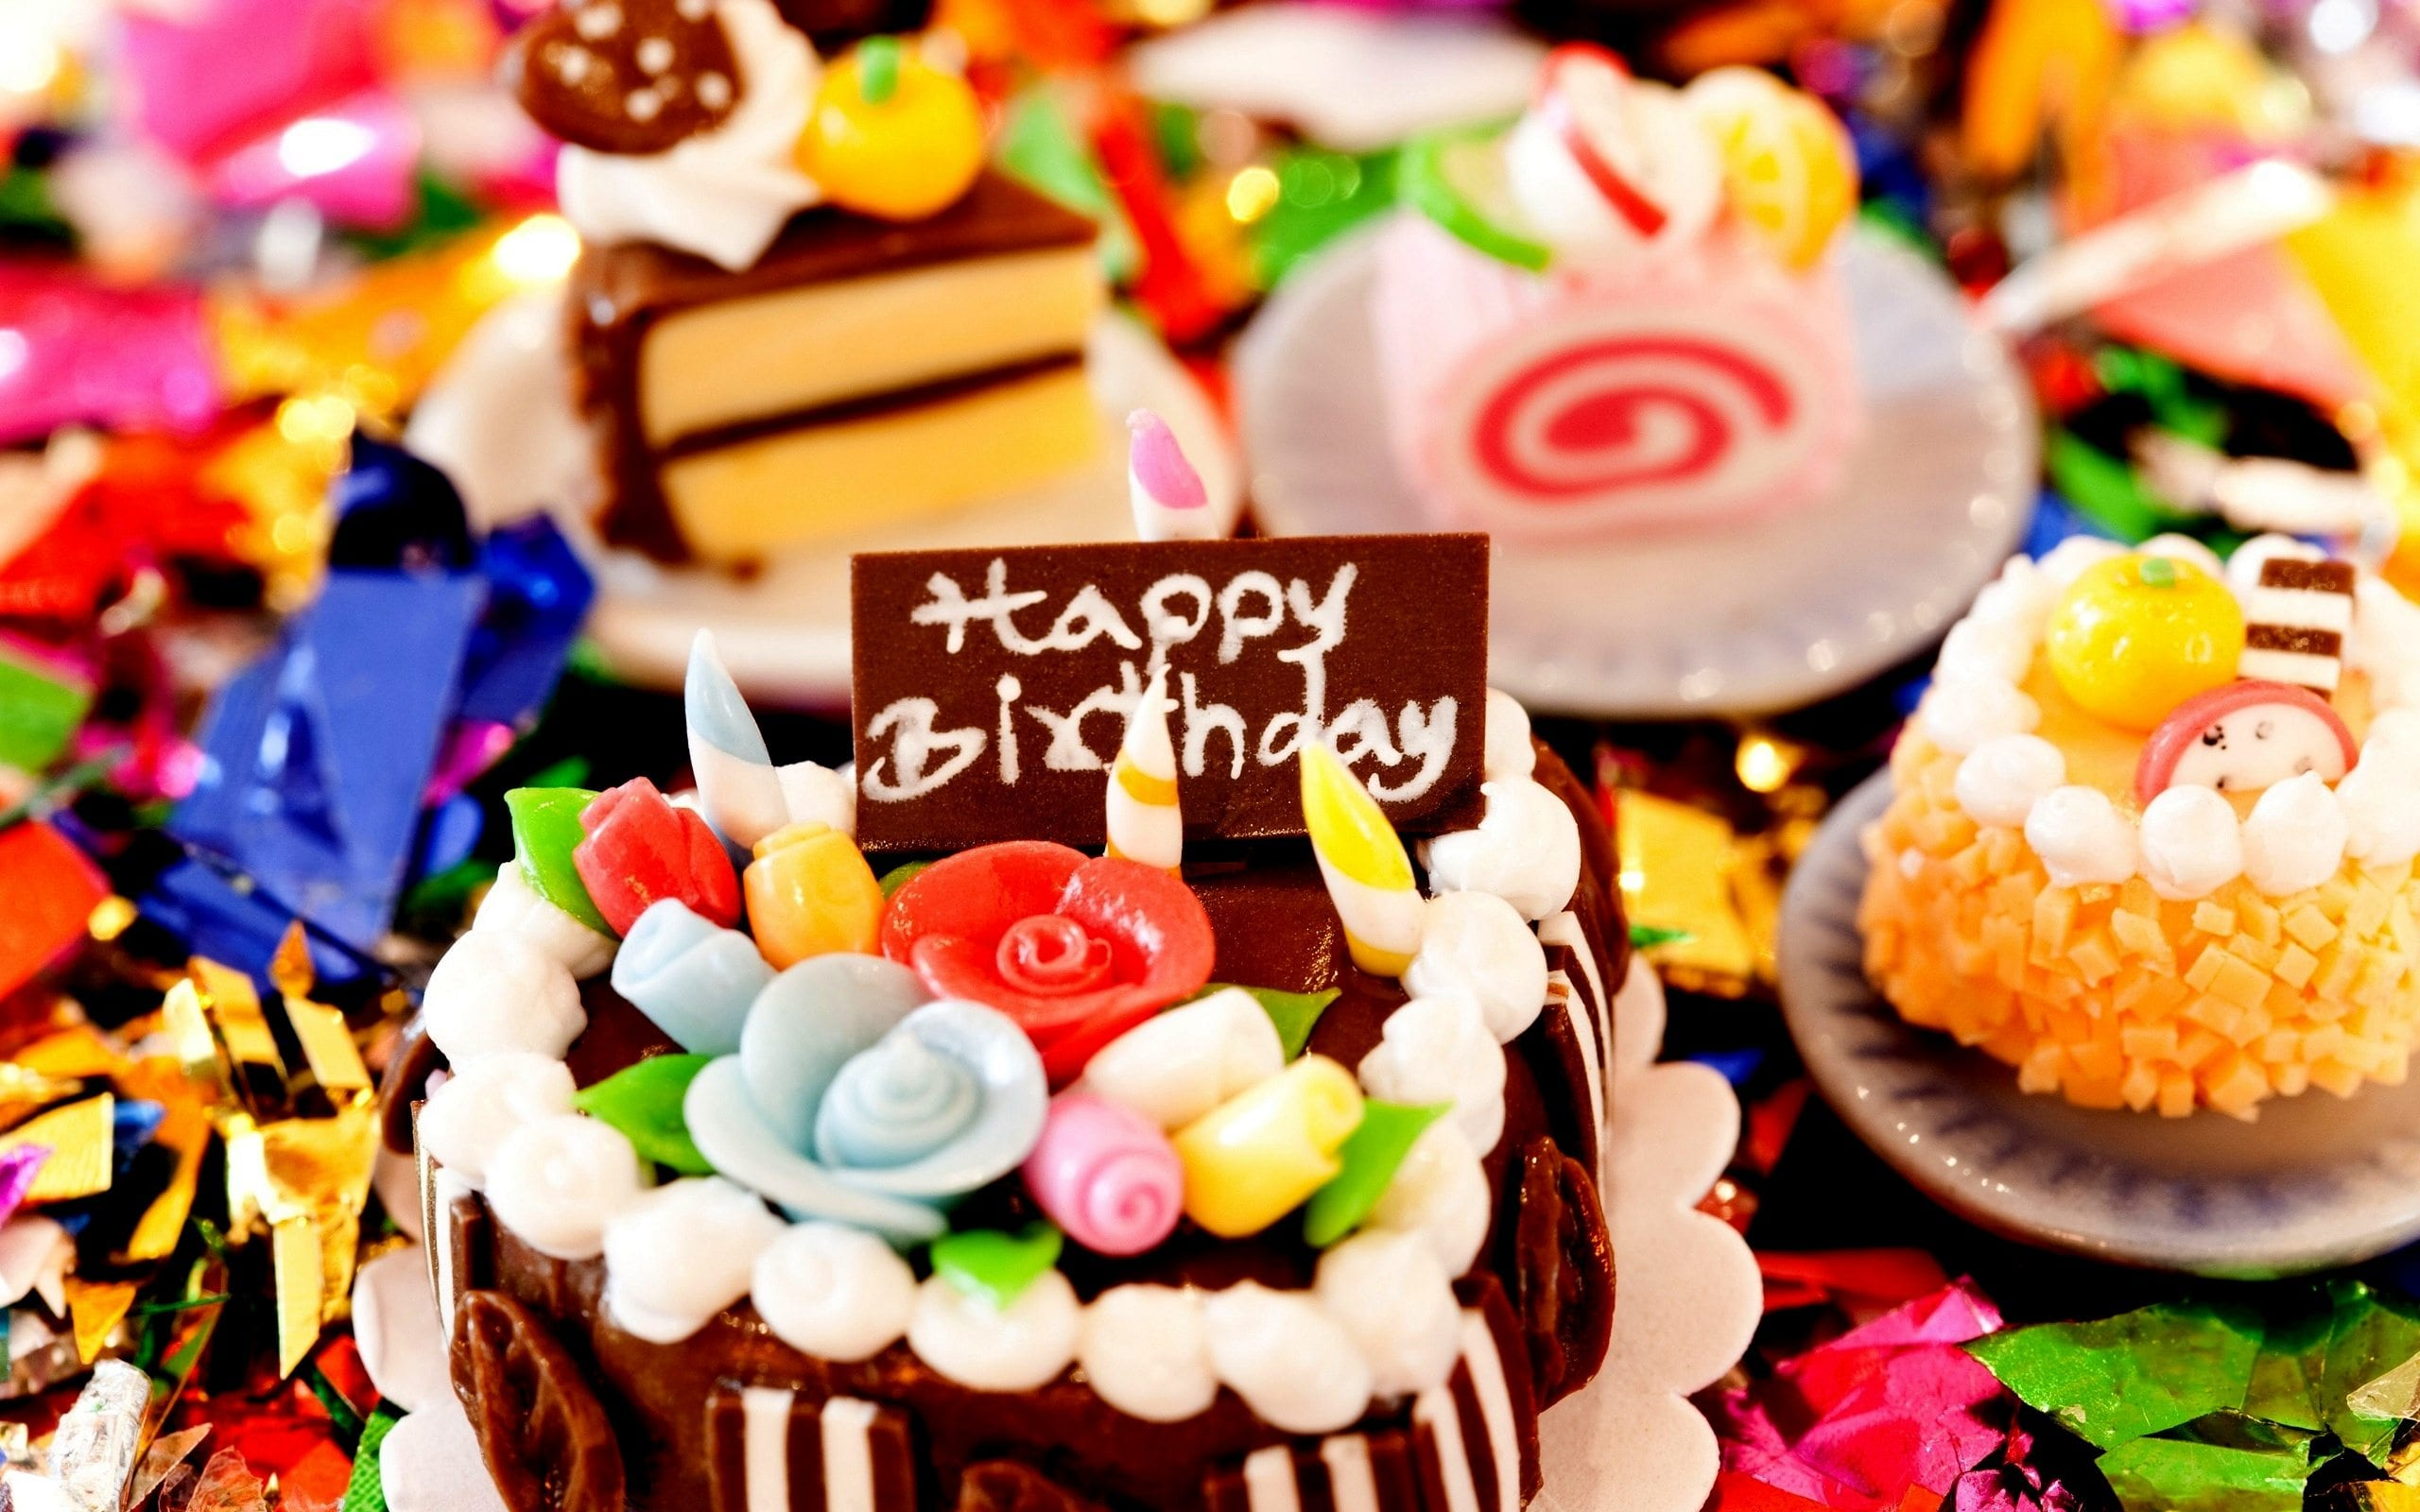 Top 10 birthday quotes wishes quotes - Top 10 Birthday Quotes Wishes Quotes 36